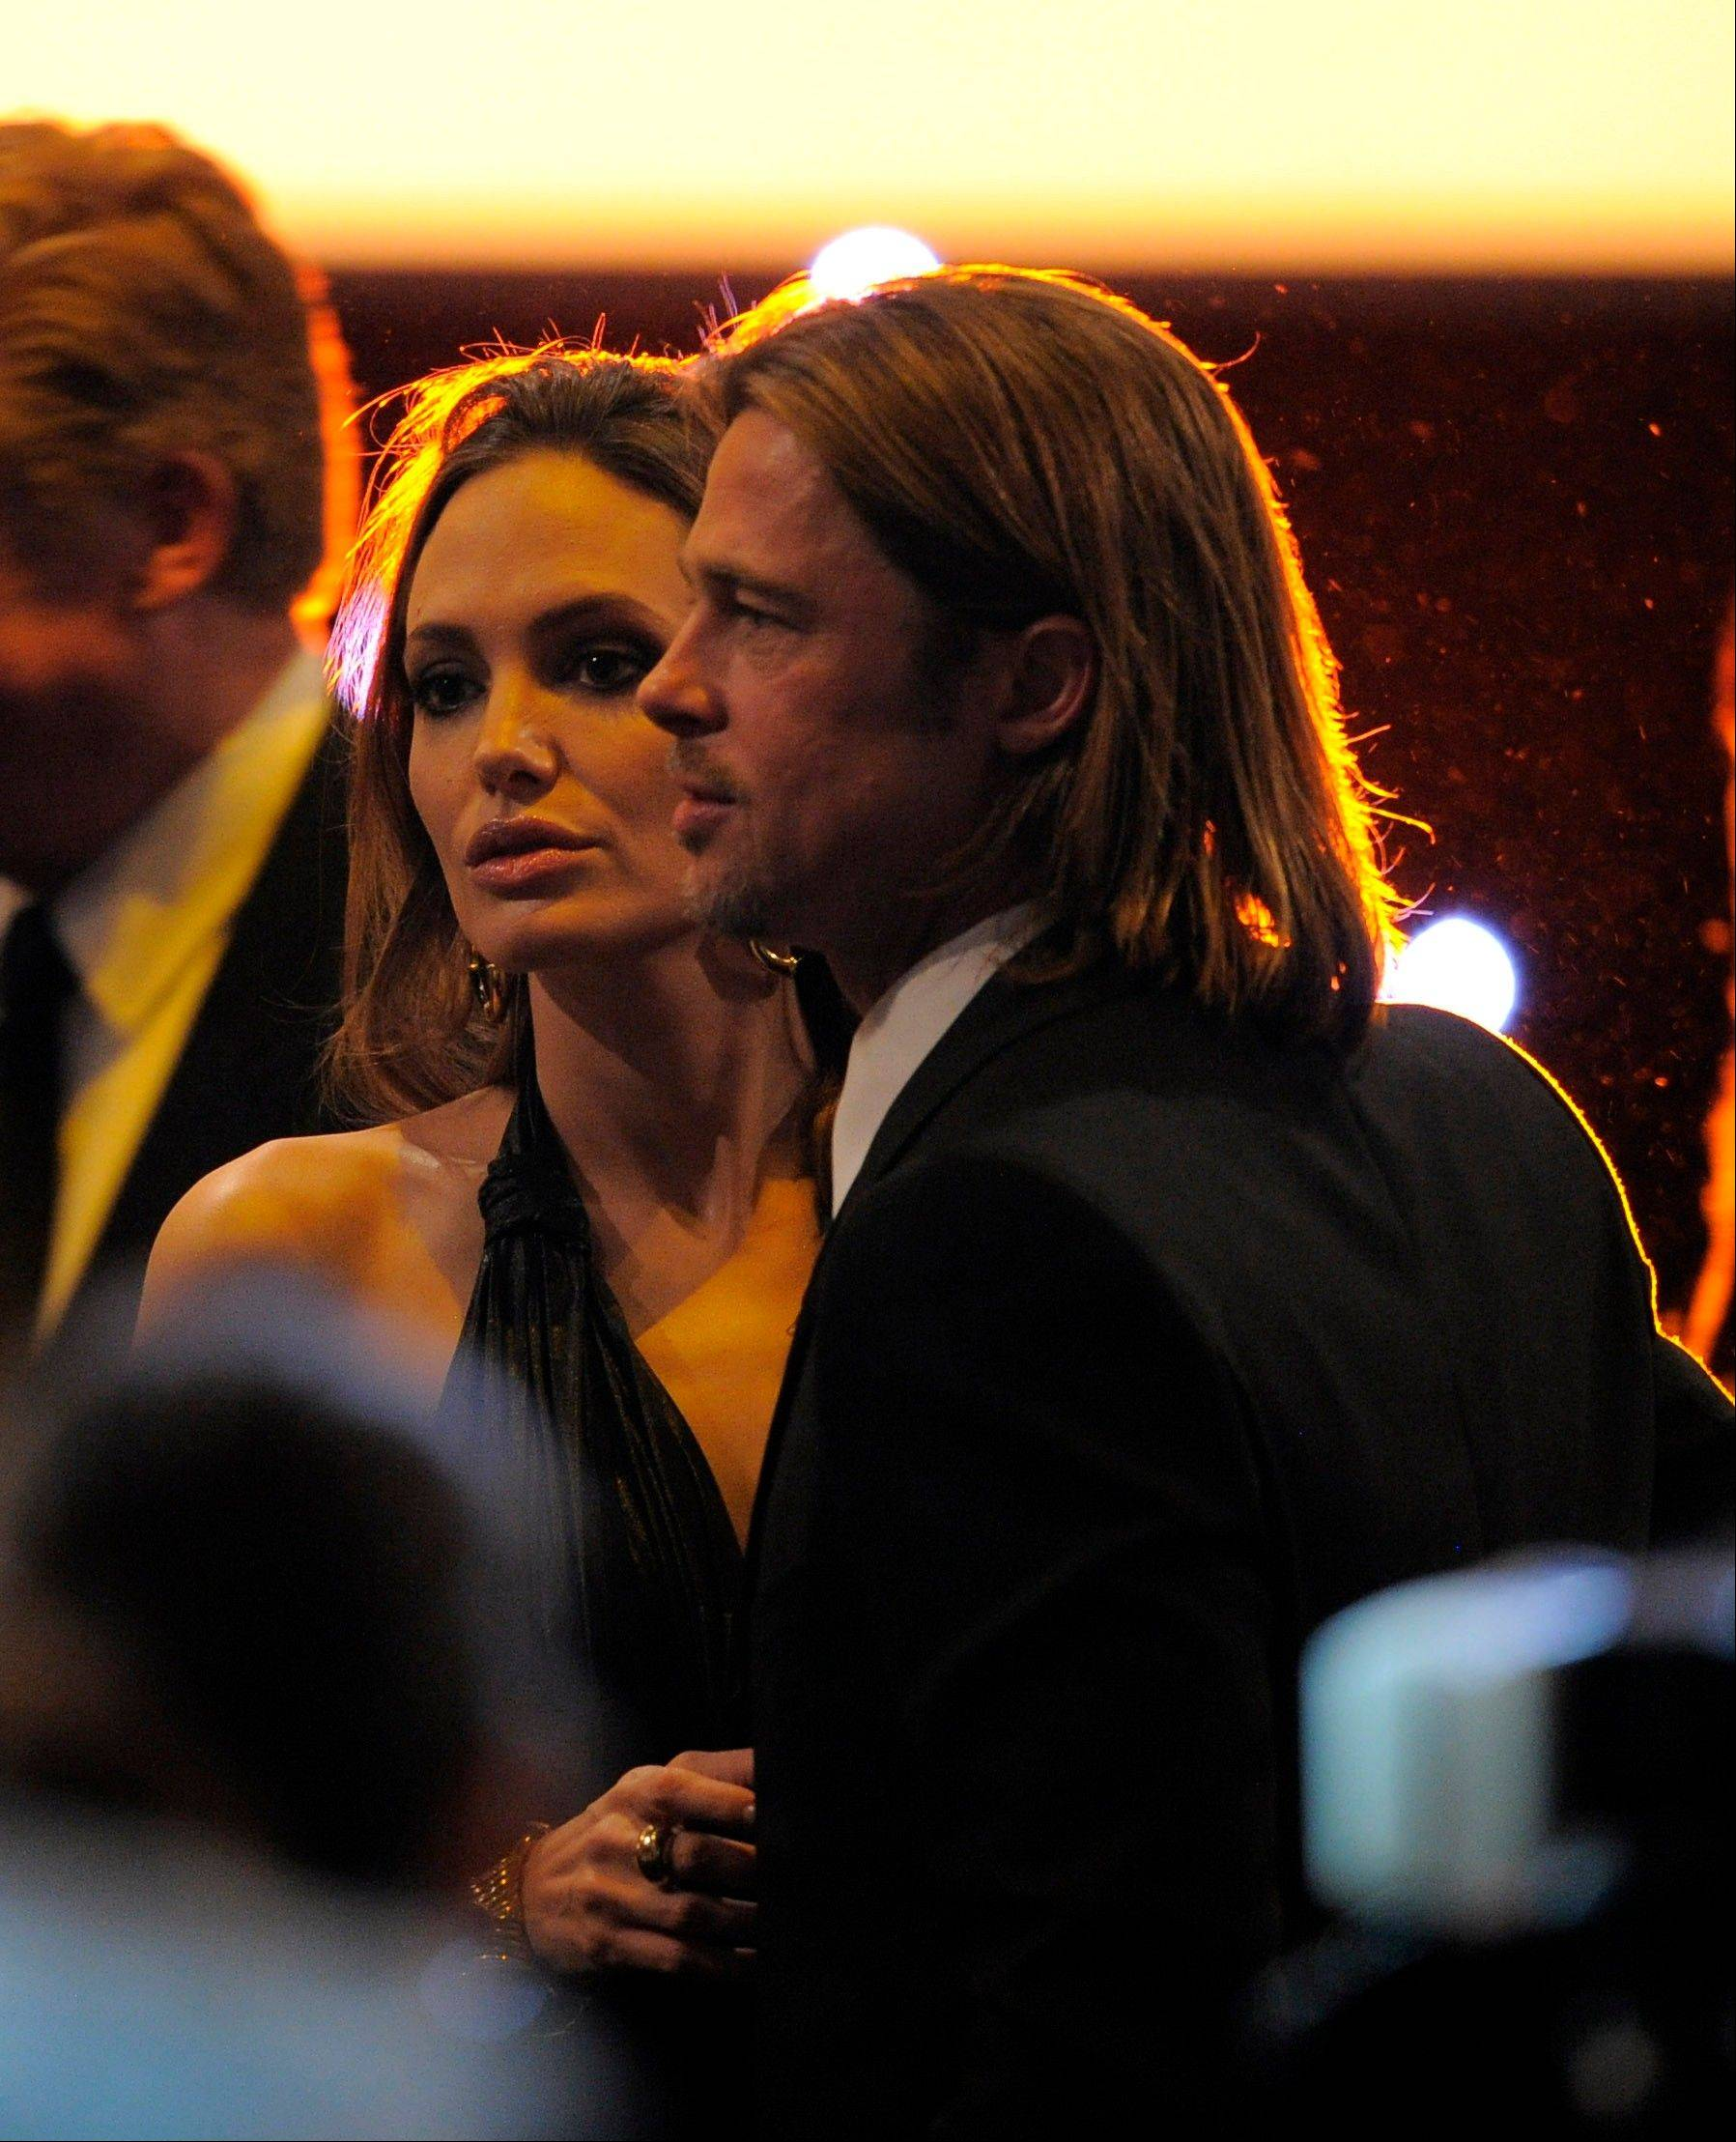 ASSOCIATED PRESSAngelina Jolie, left, and Brad Pitt are seen at the 18th Annual Screen Actors Guild Awards on Sunday Jan. 29, 2012 in Los Angeles.